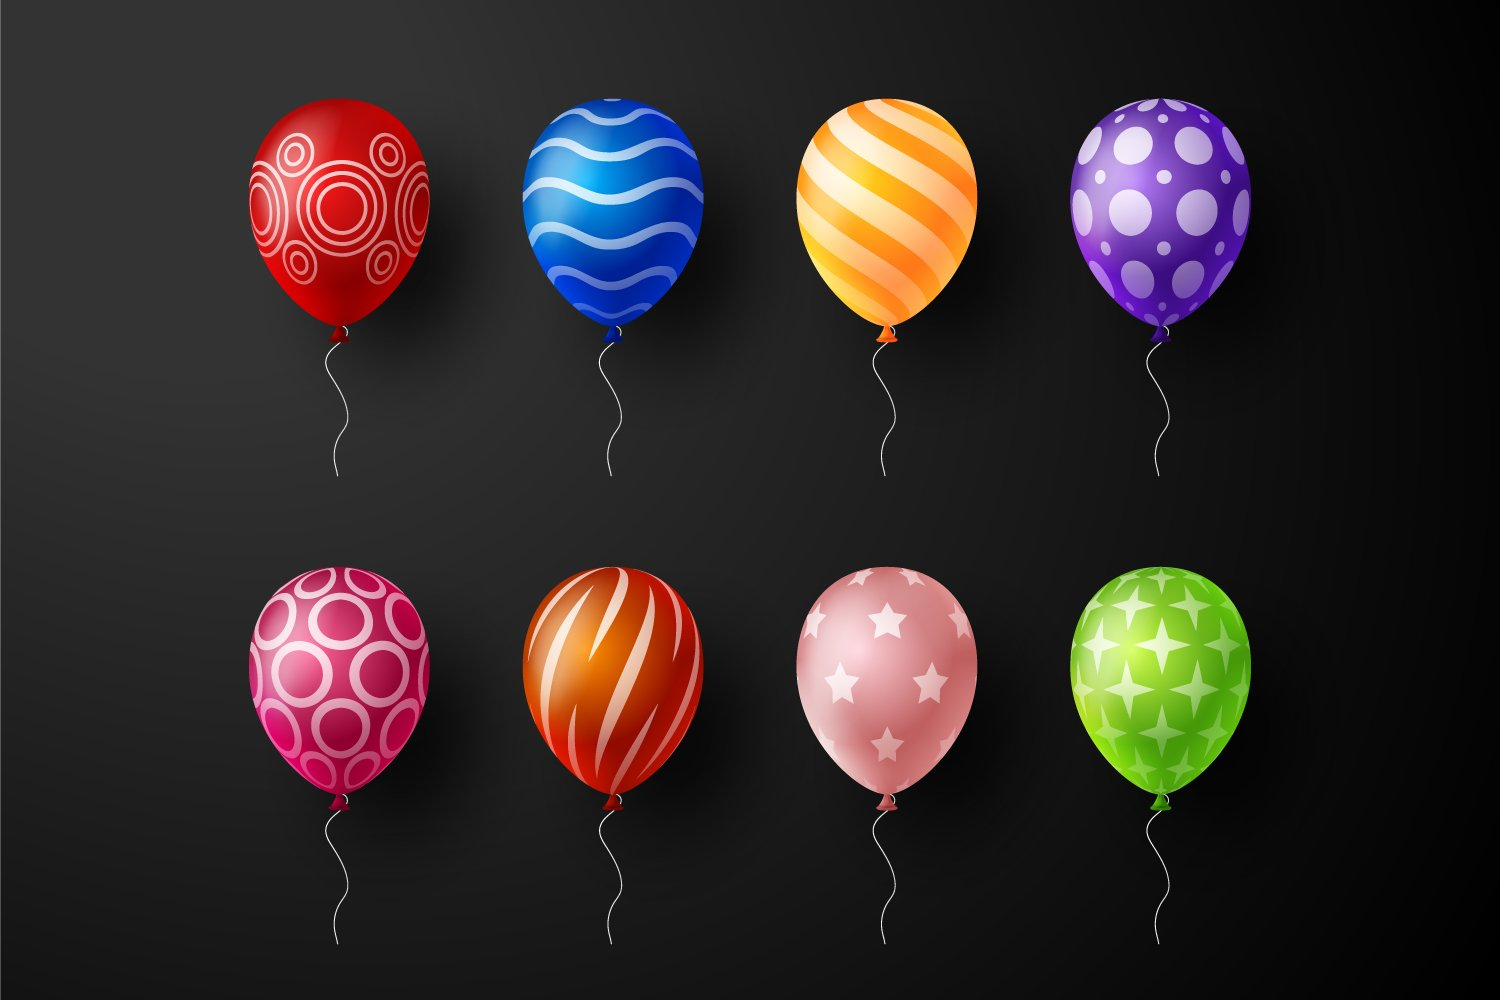 Bright balls with unusual prints on a black background.